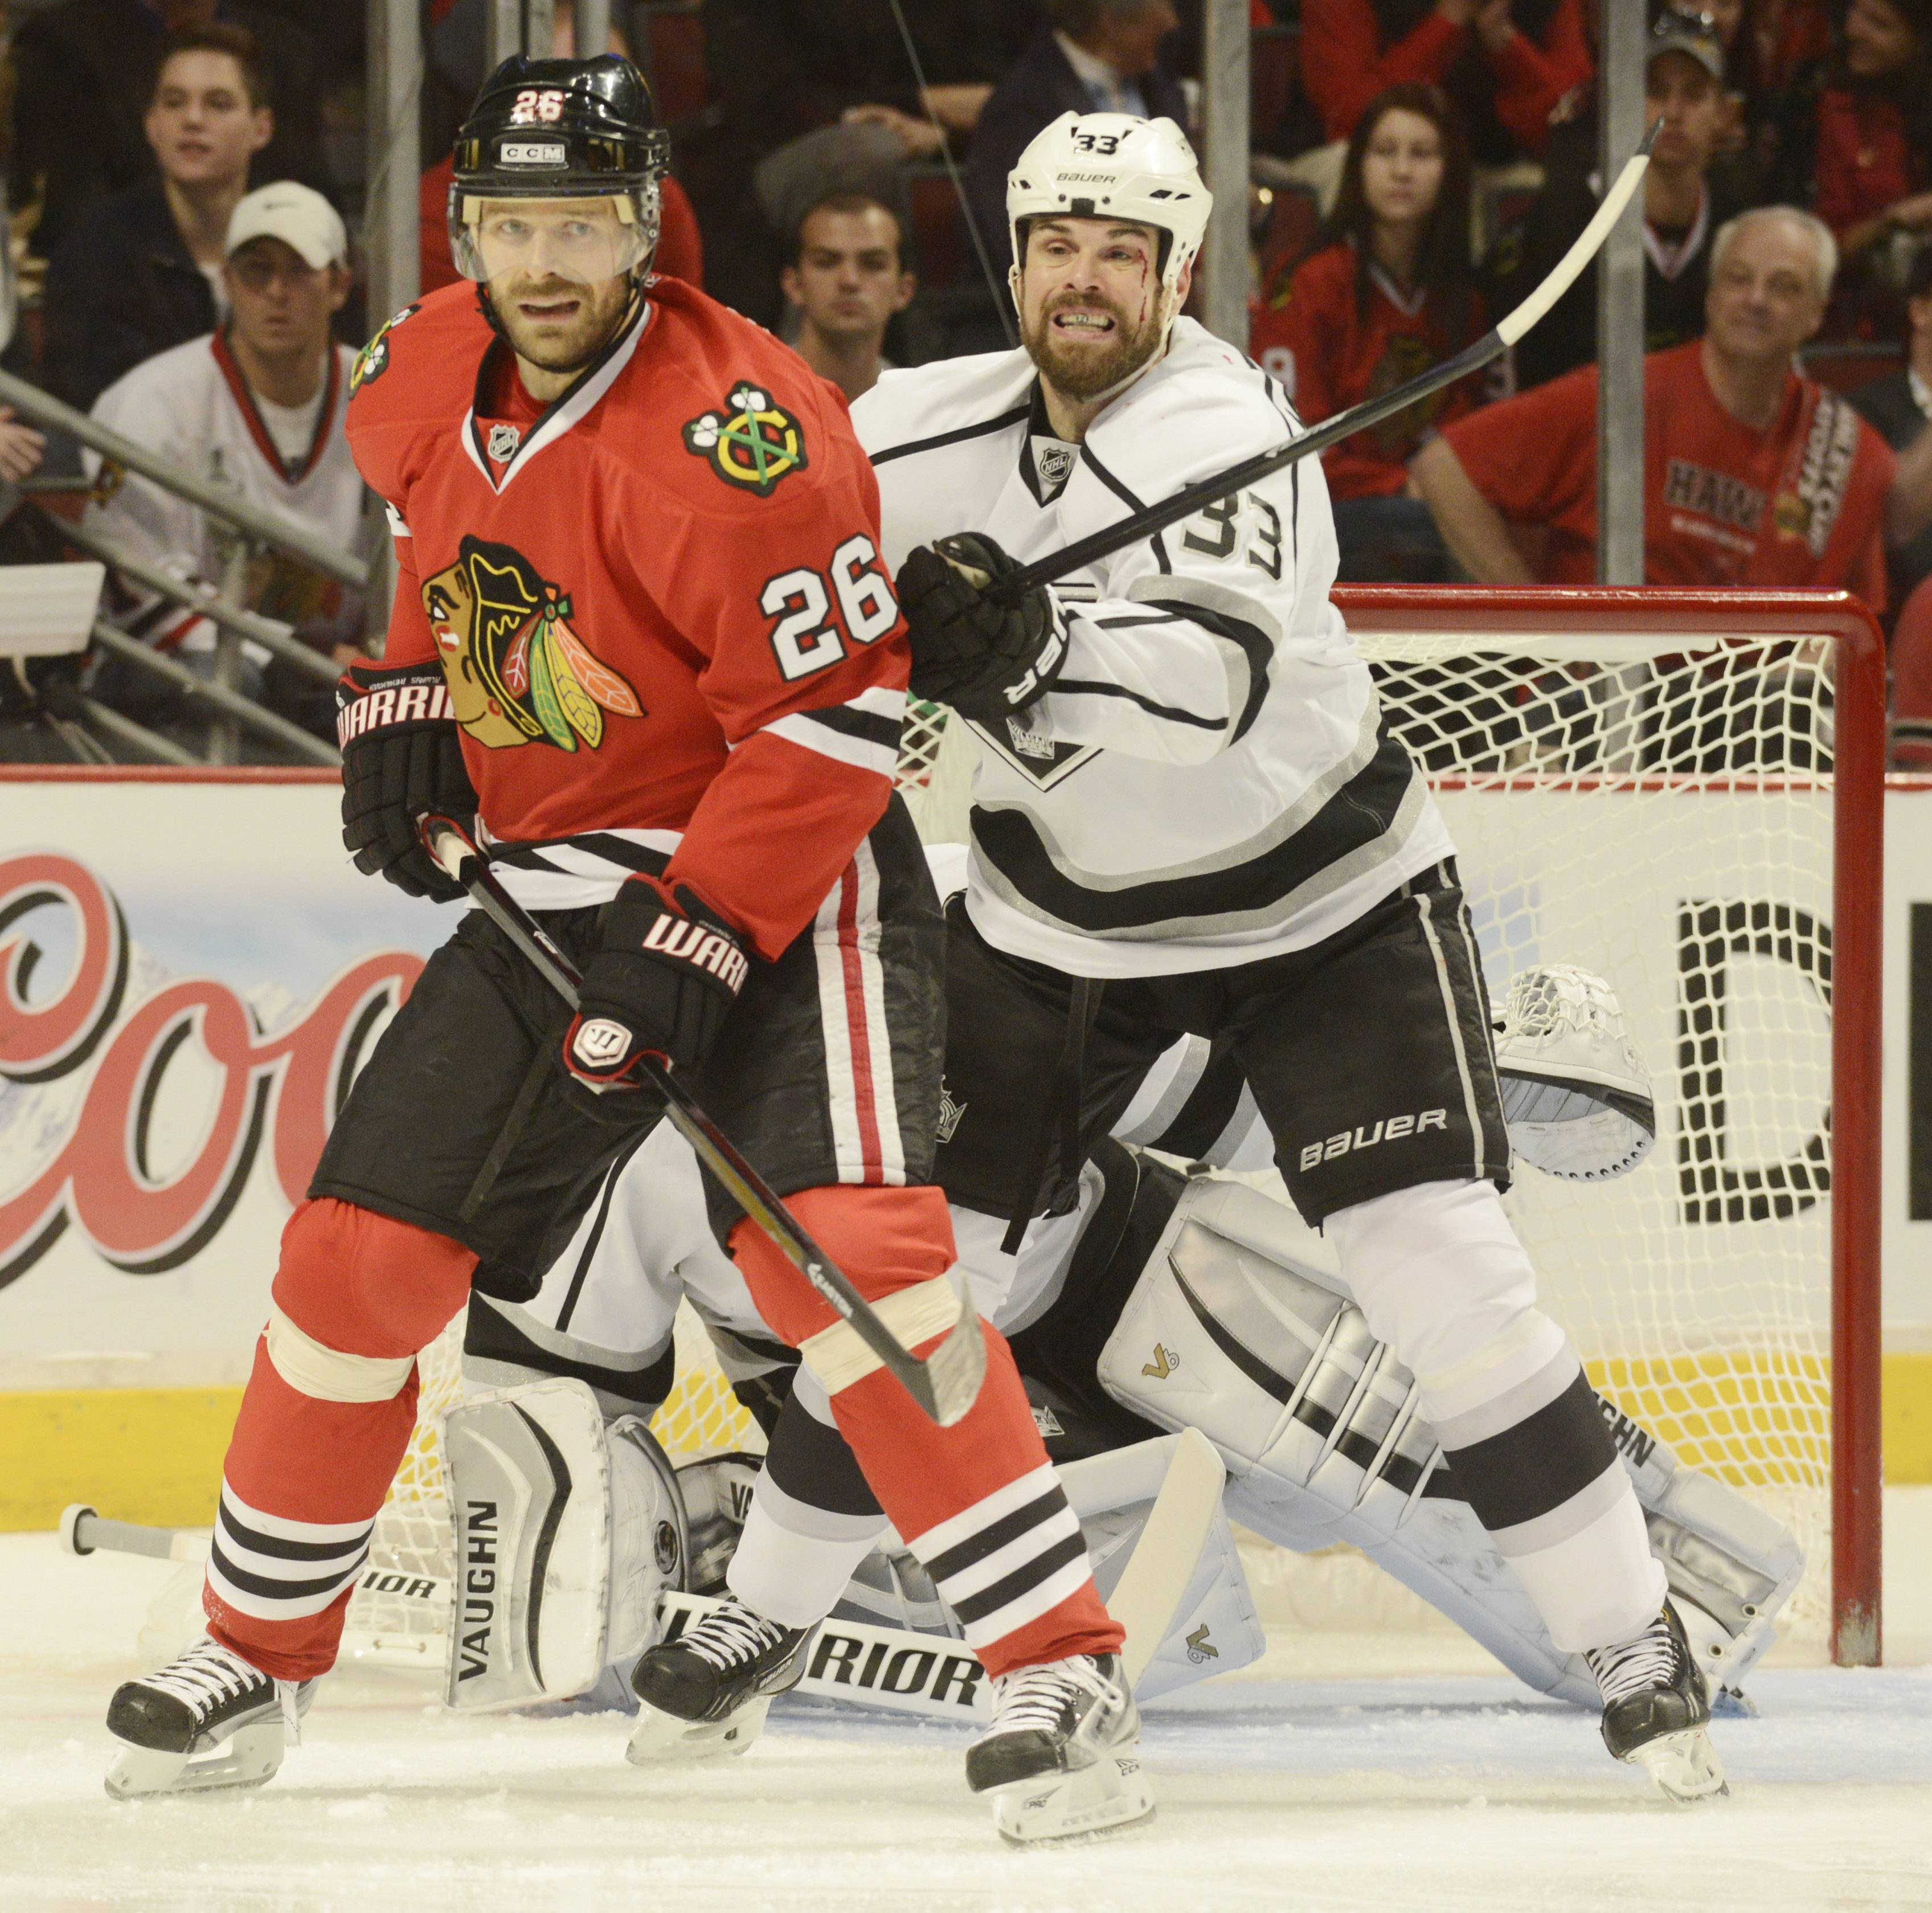 Los Angeles Kings defenseman Willie Mitchell, right, tries to push Chicago Blackhawks center Michal Handzus away from the net during Sunday's game at the United Center in Chicago.